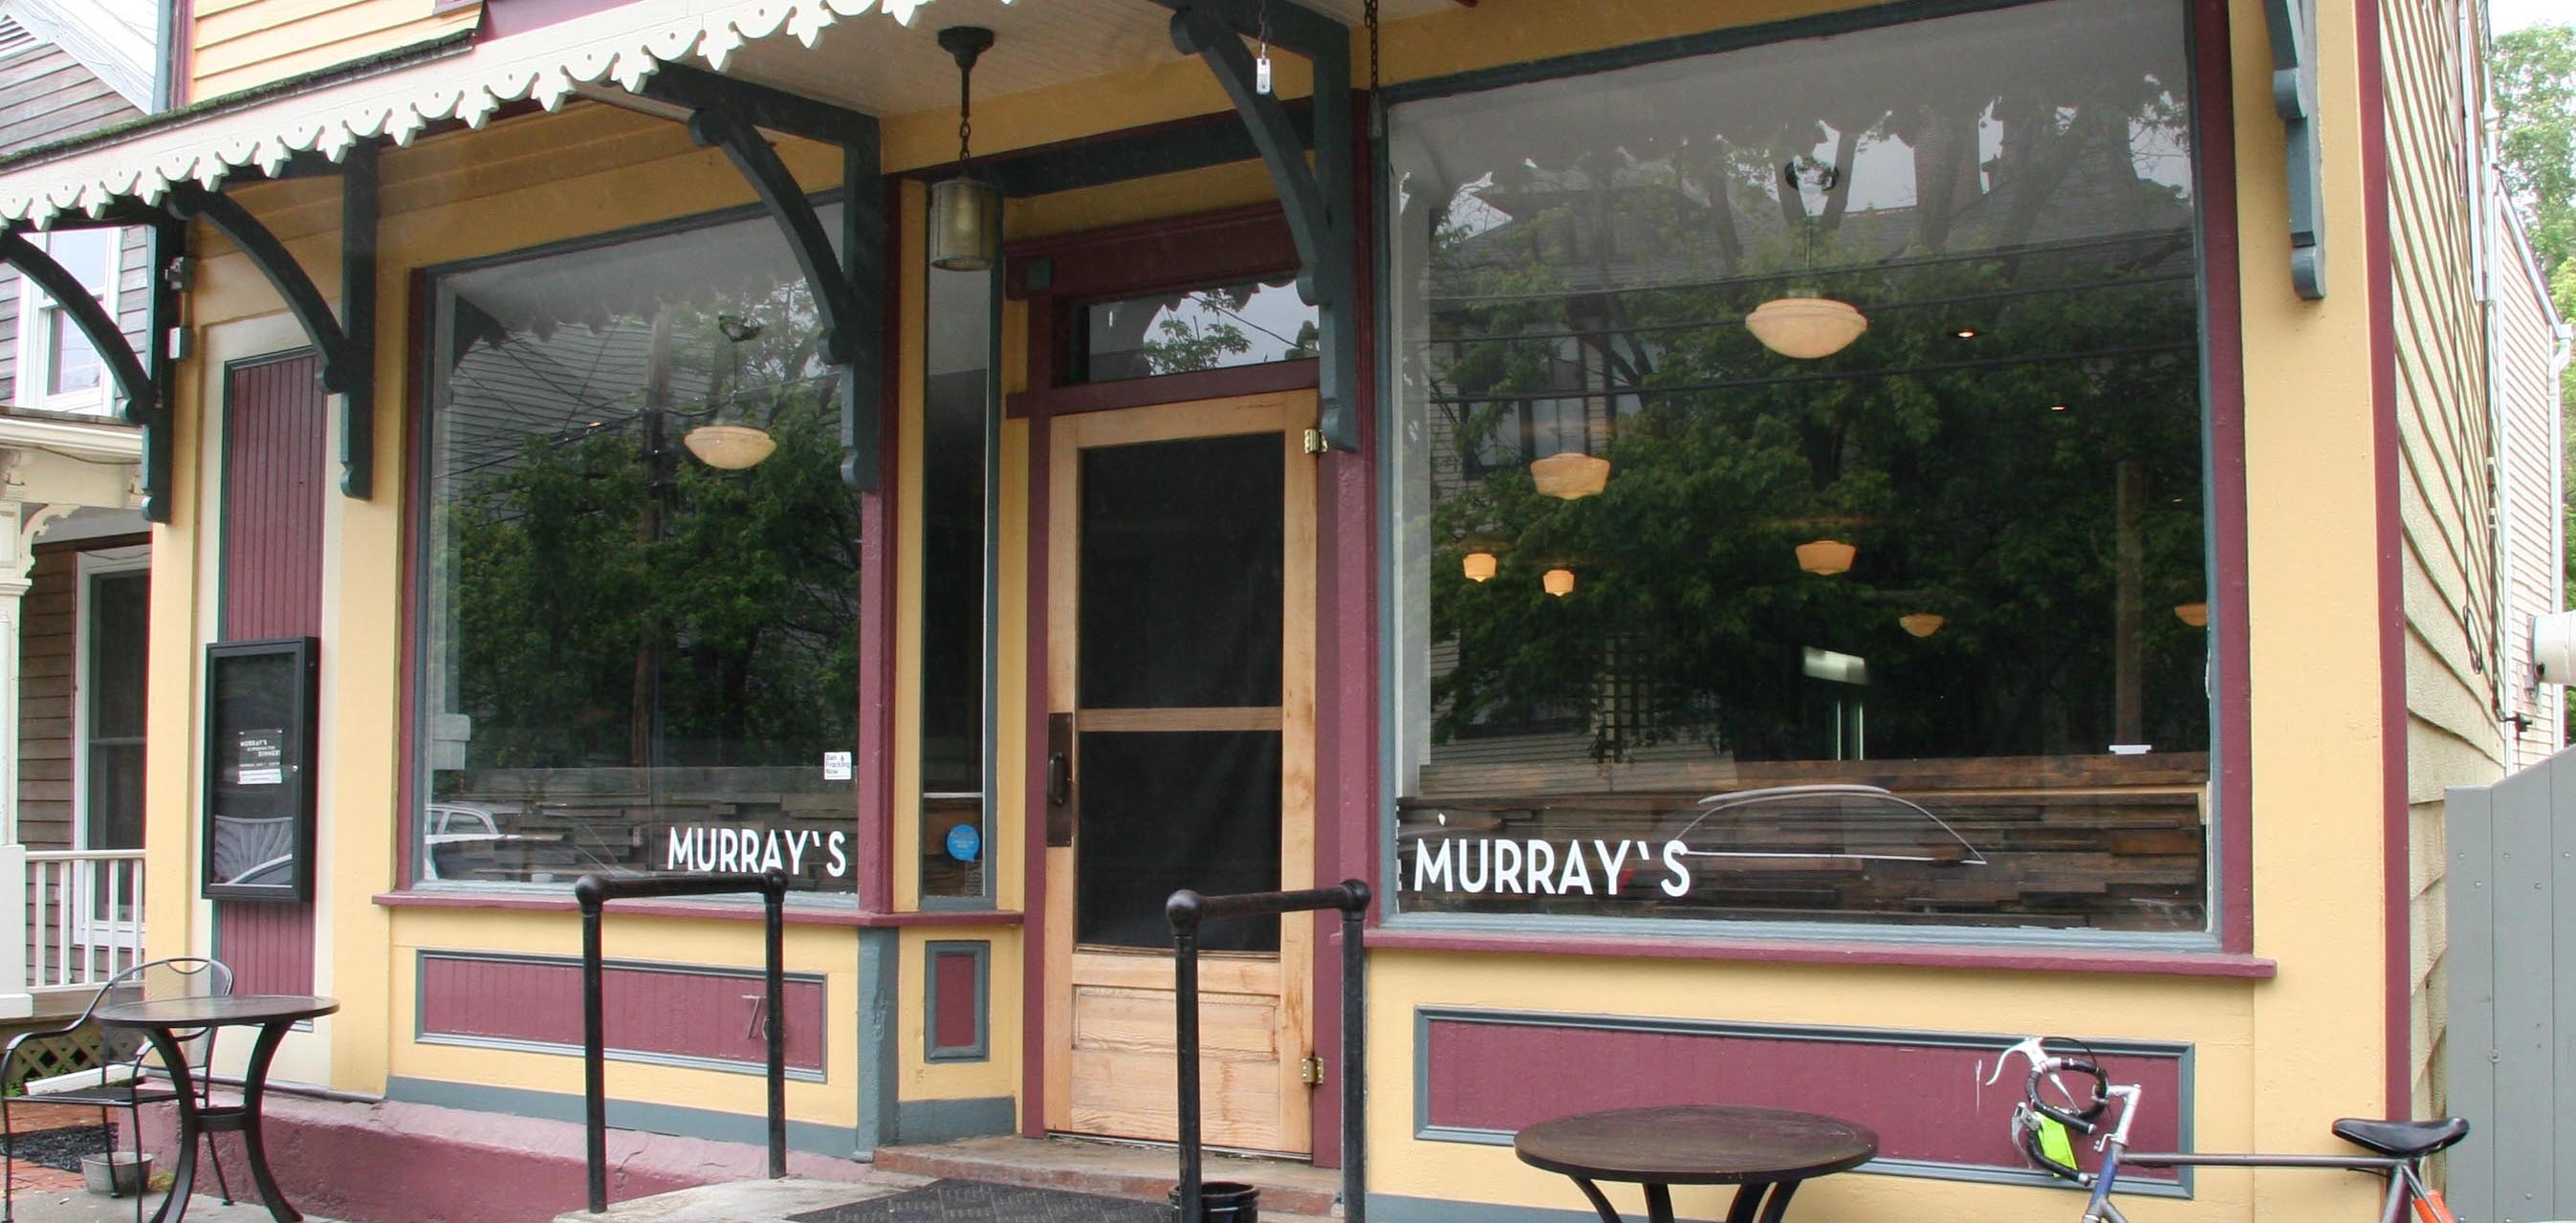 Murray's front